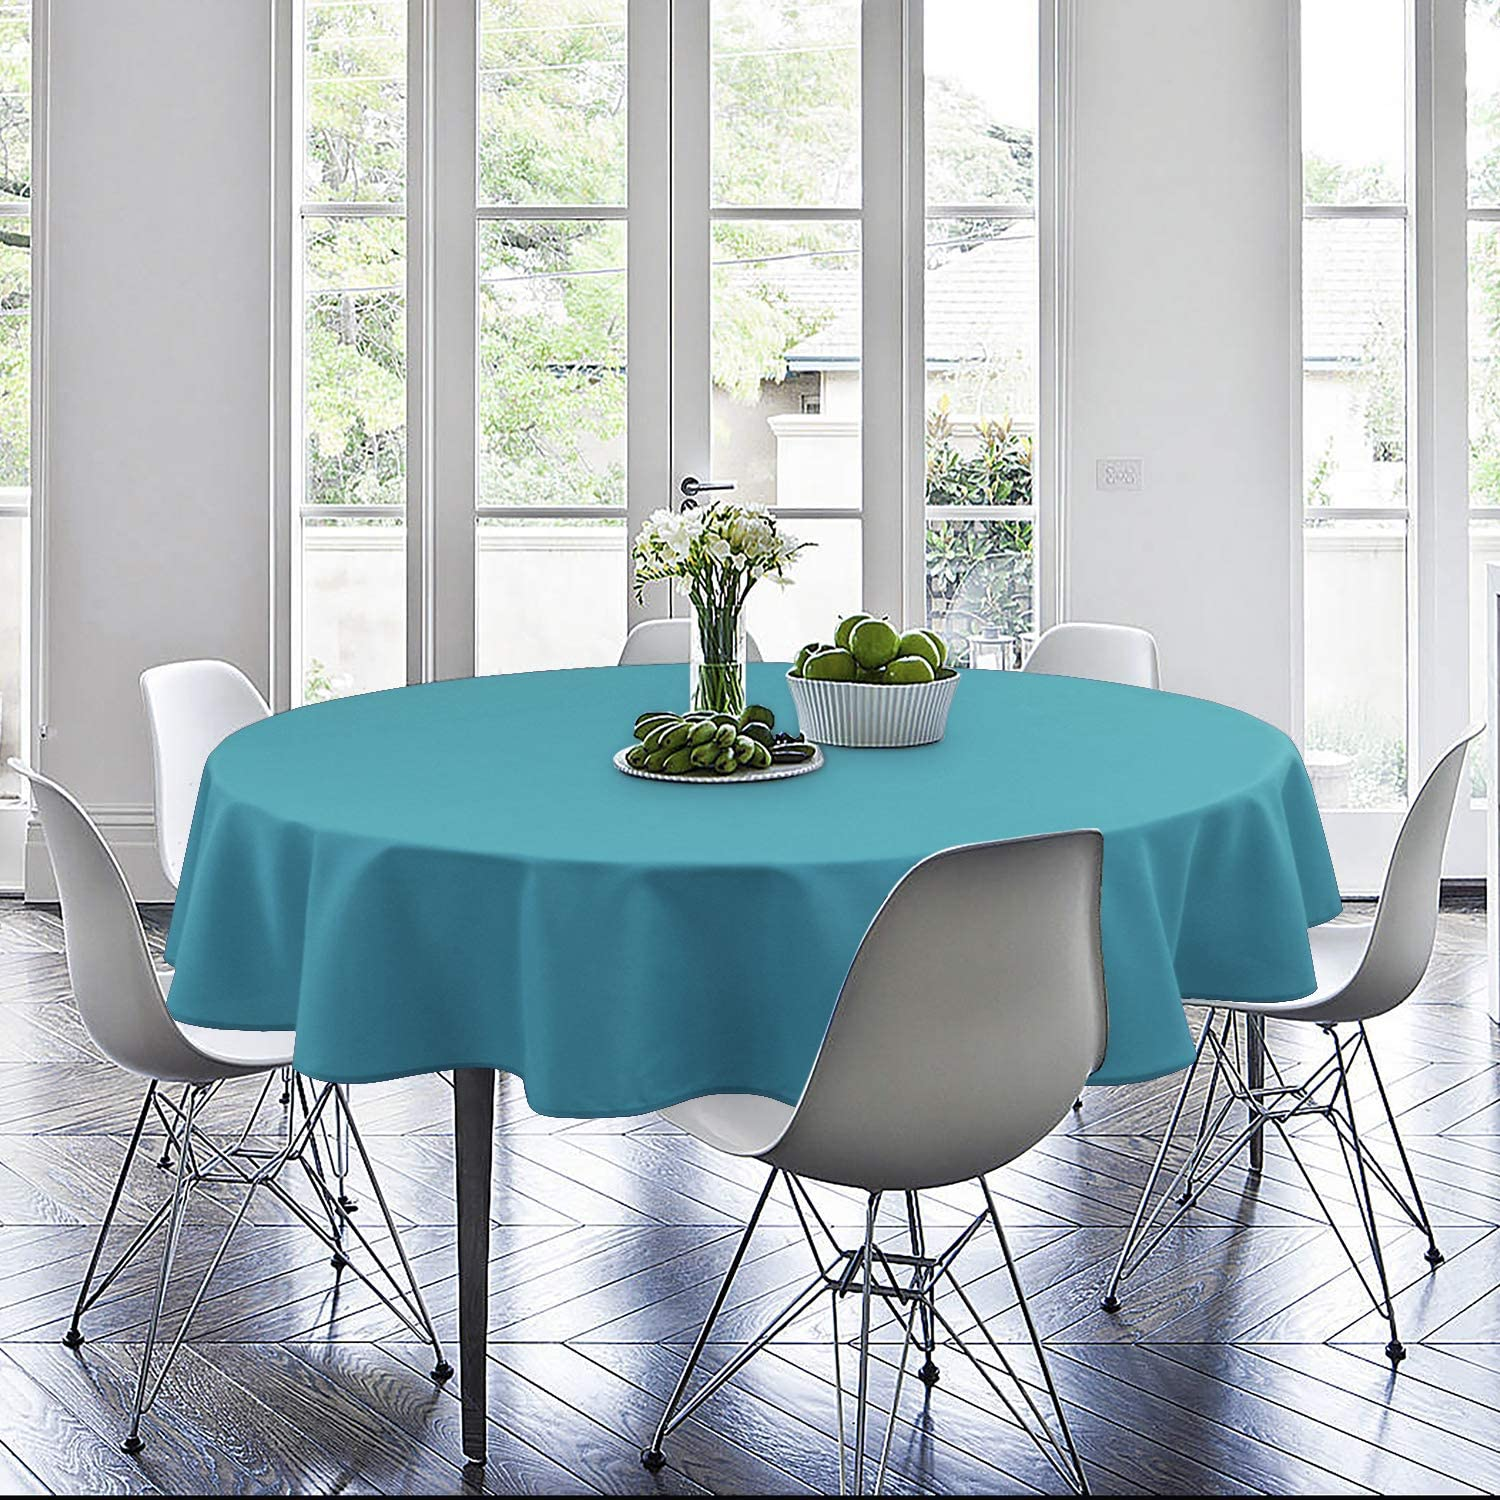 Hiasan Round Tablecloth 60 Inch Aqua Waterproof Stain Resistant Spillproof Polyester Fabric Table Cloth for Dining Room Kitchen Party